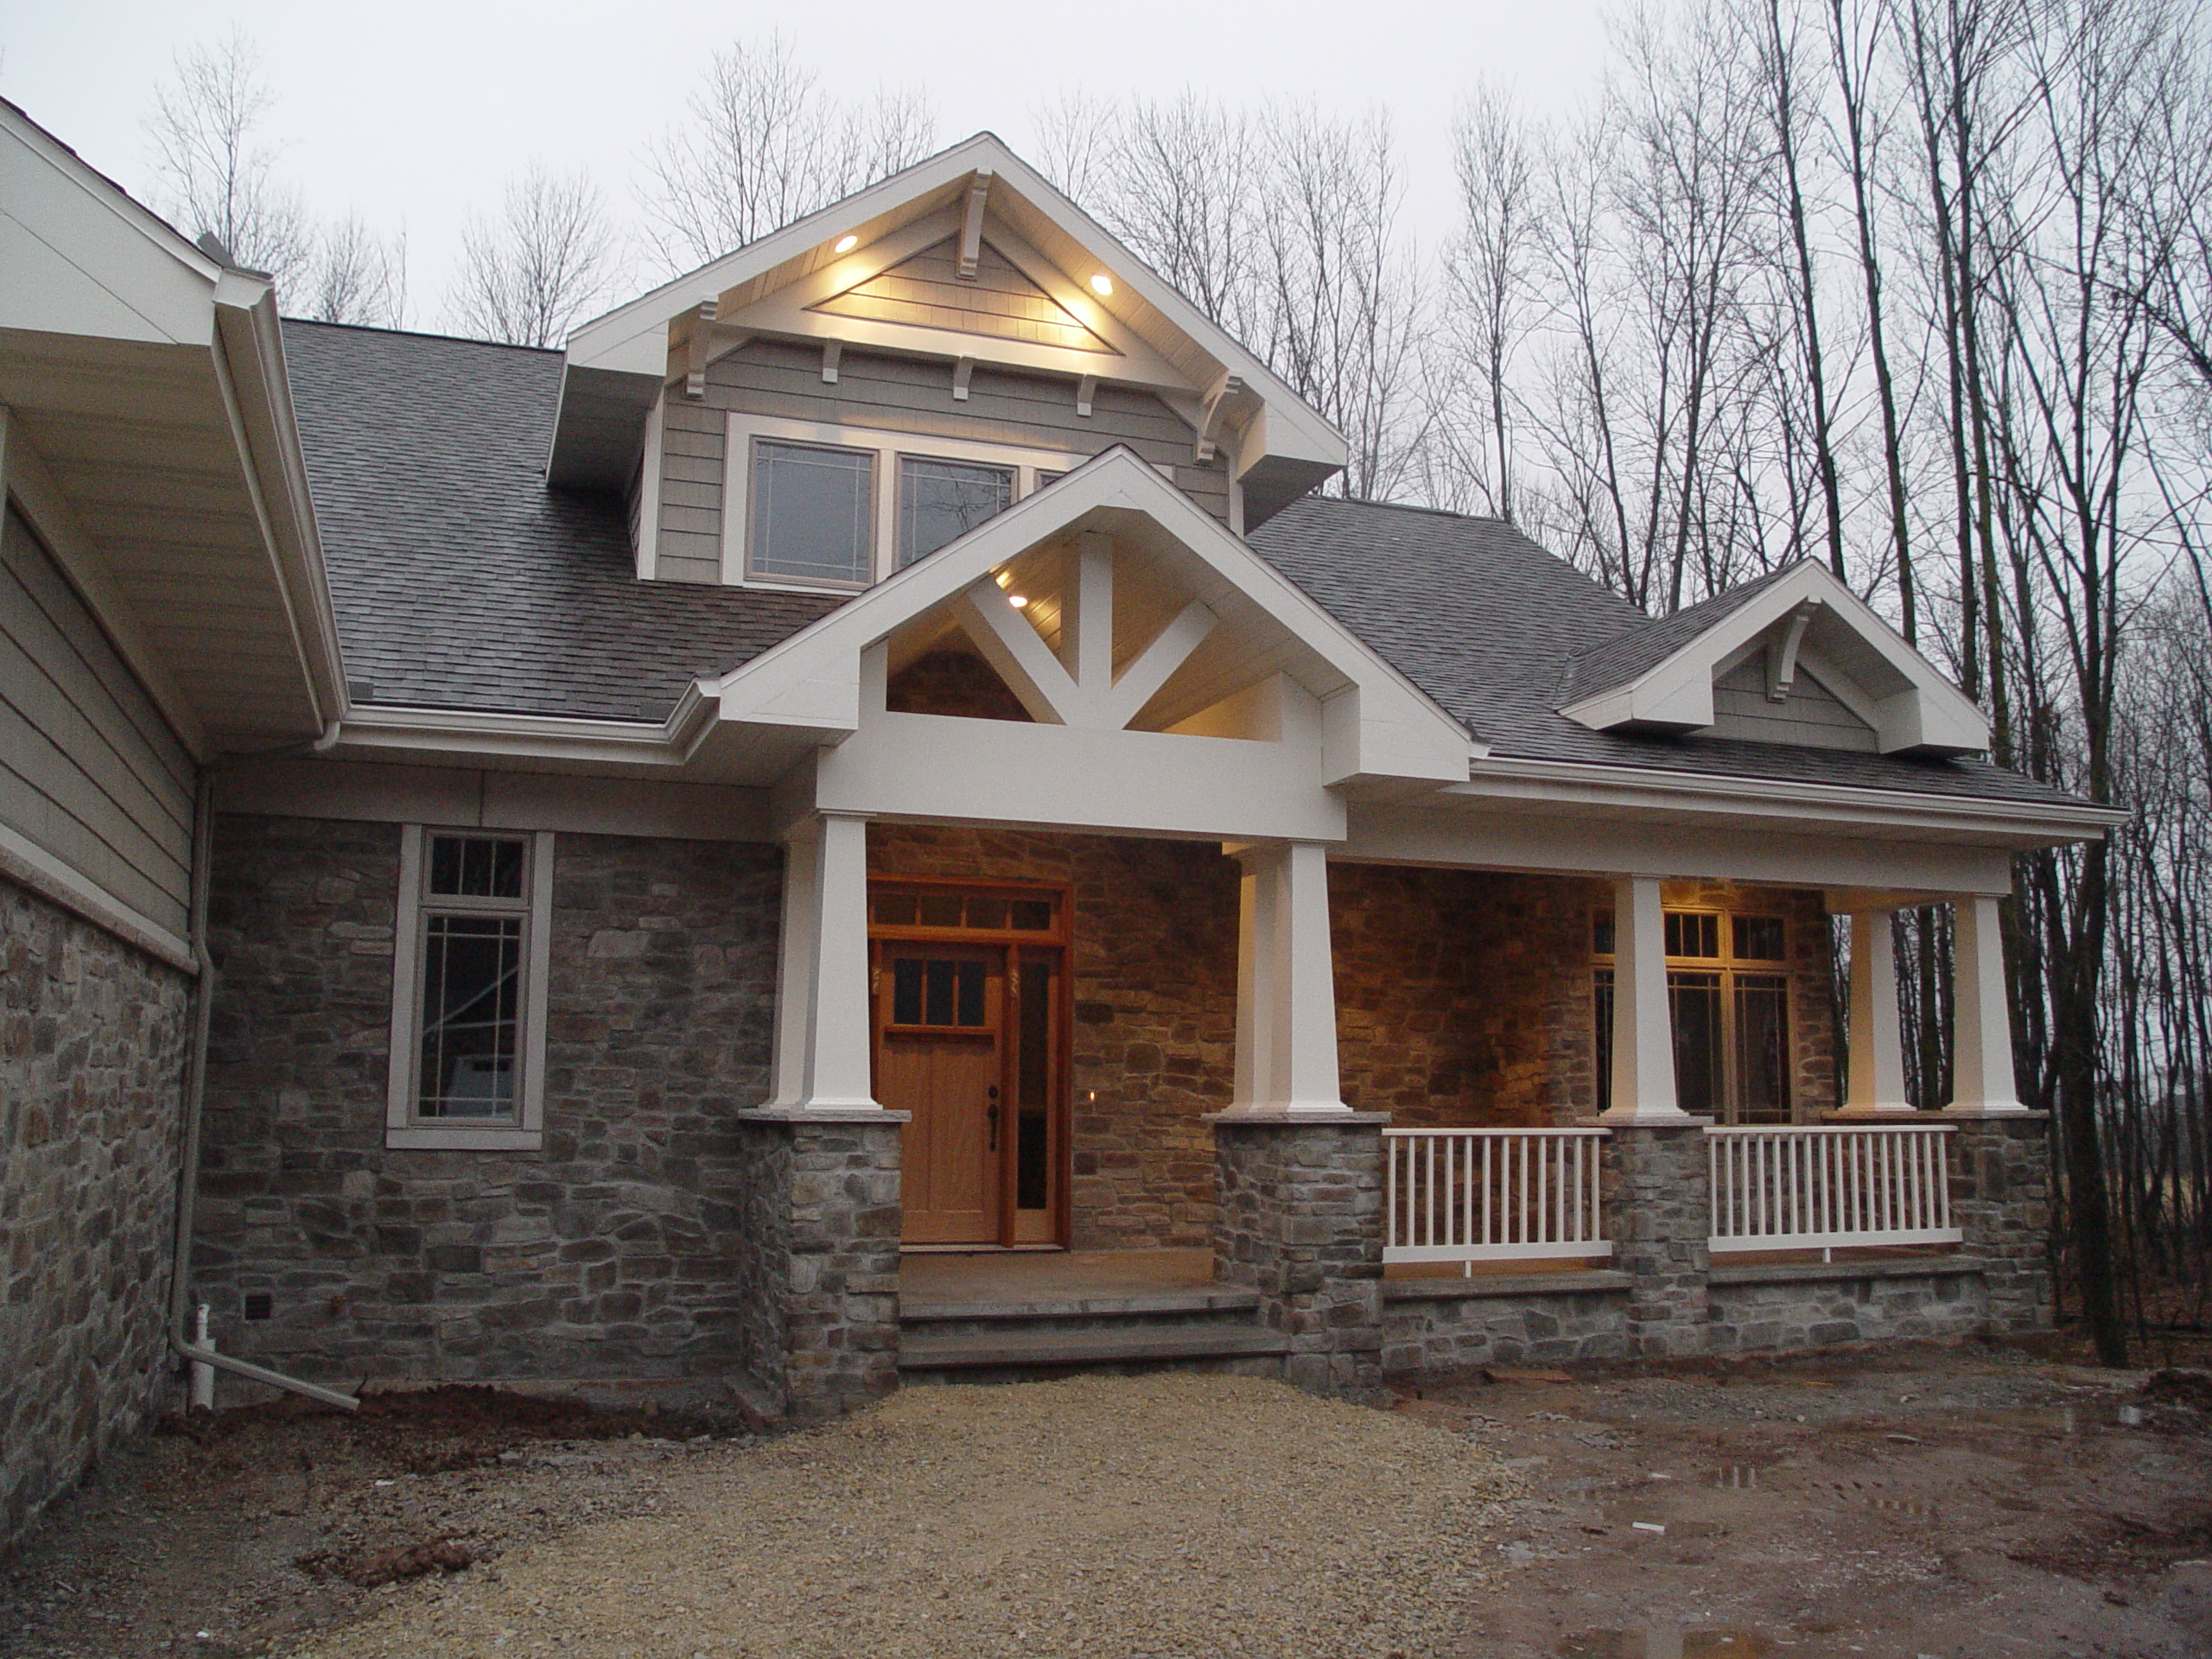 Dressing up the exterior with gable details katie jane for Craftsman style gables